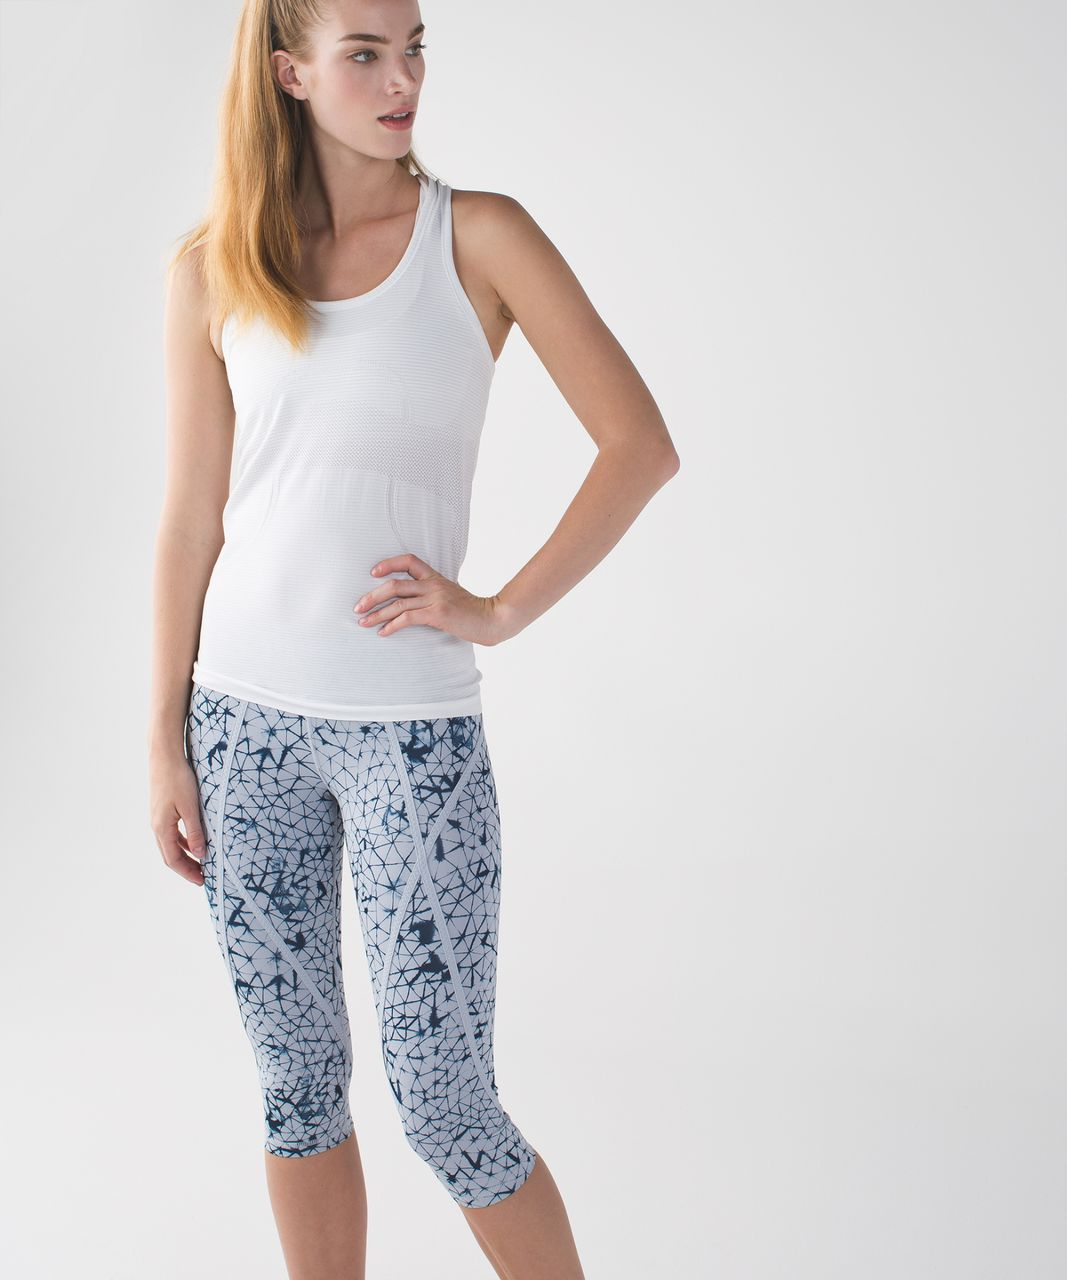 Lululemon Pedal Pace Crop. Star Crushed Silver Fox ...